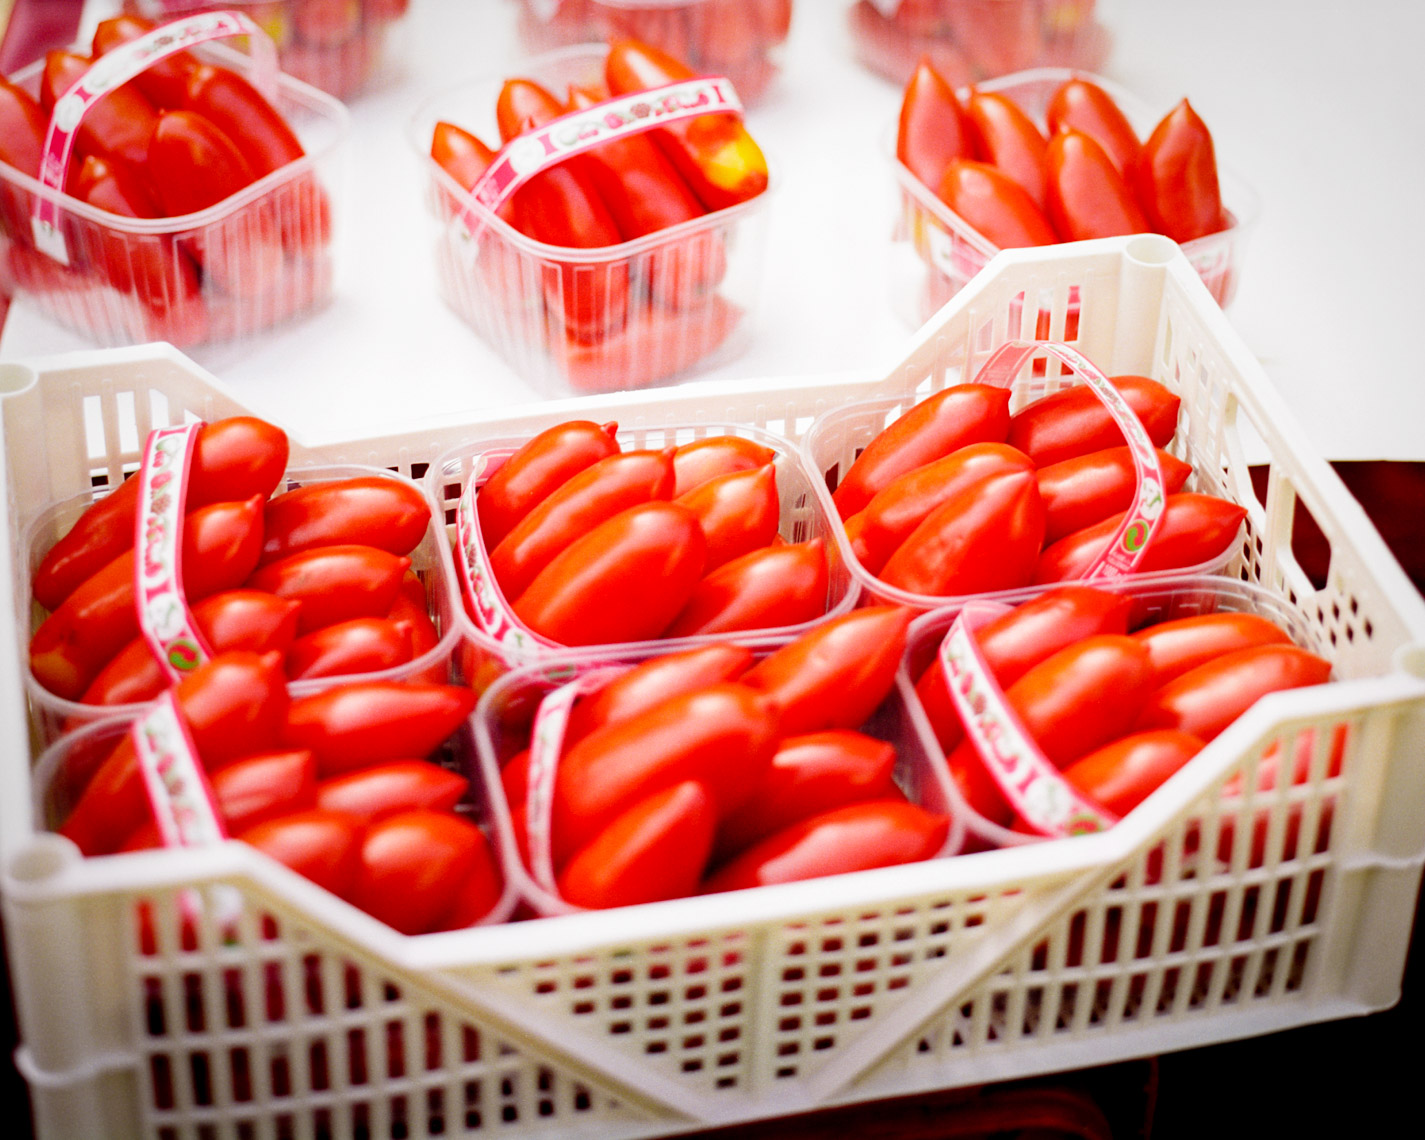 Luscious Red Tomatoes | Tosca Radigonda Photography